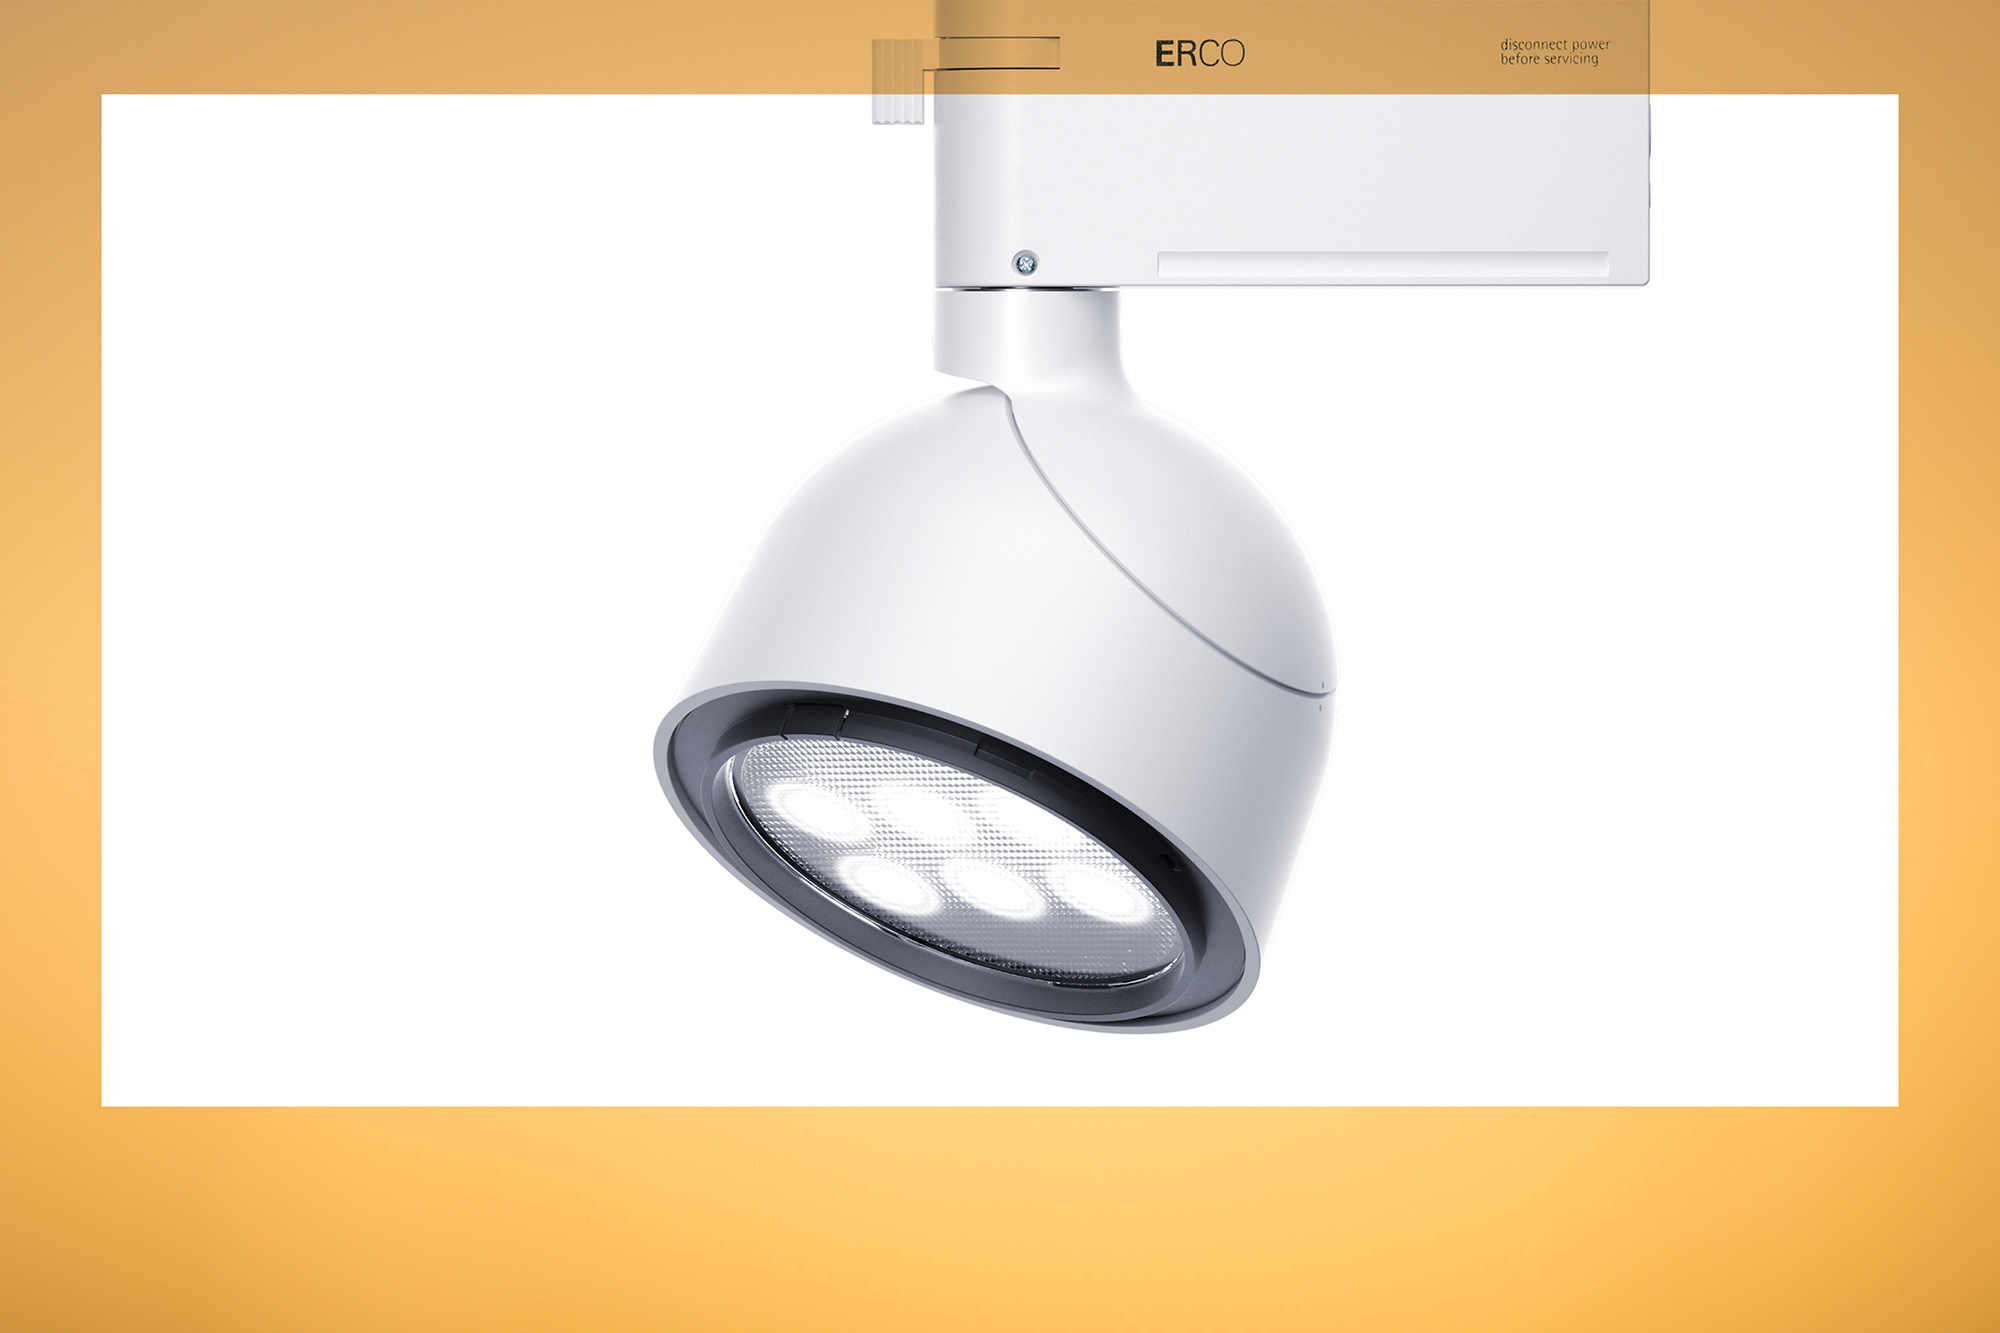 2018 Products Issue Tracklighting Architectural Lighting